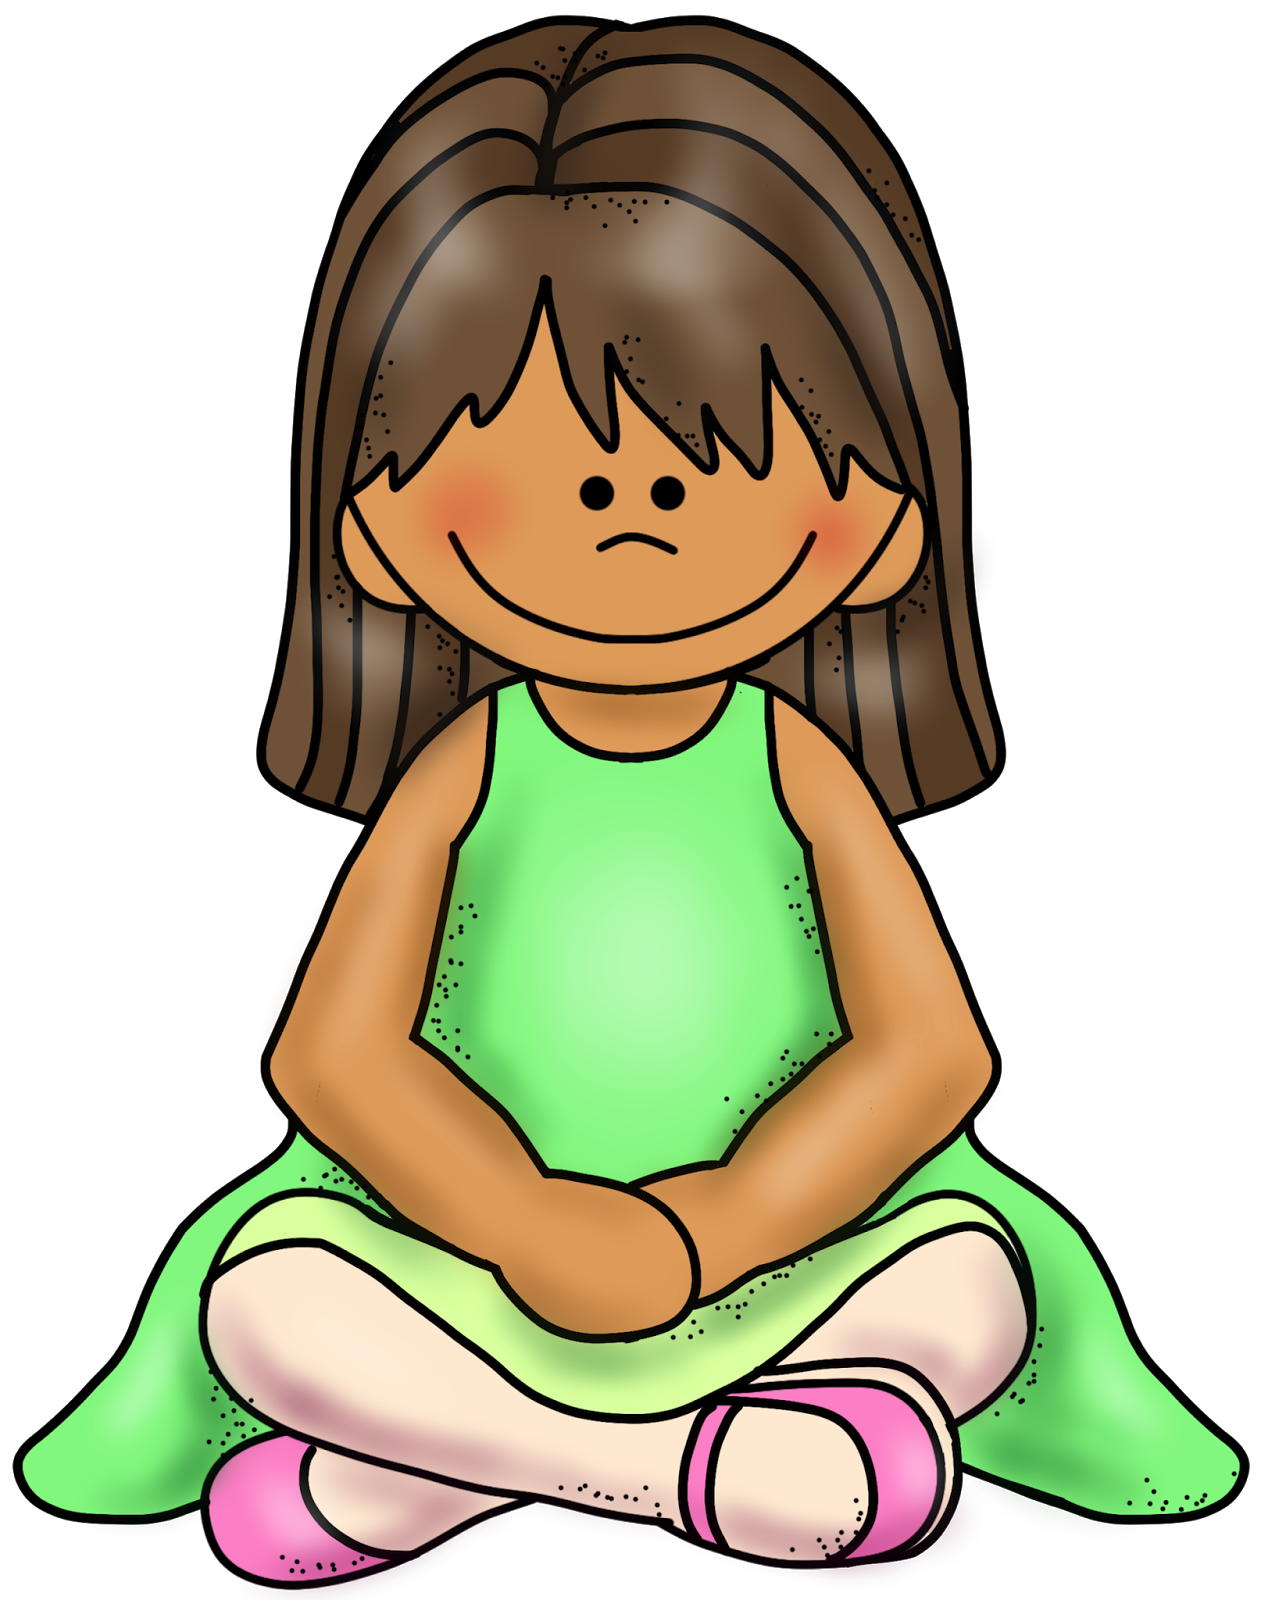 sitting criss cross applesauce clipart classroom bulletin rh pinterest com making applesauce clipart